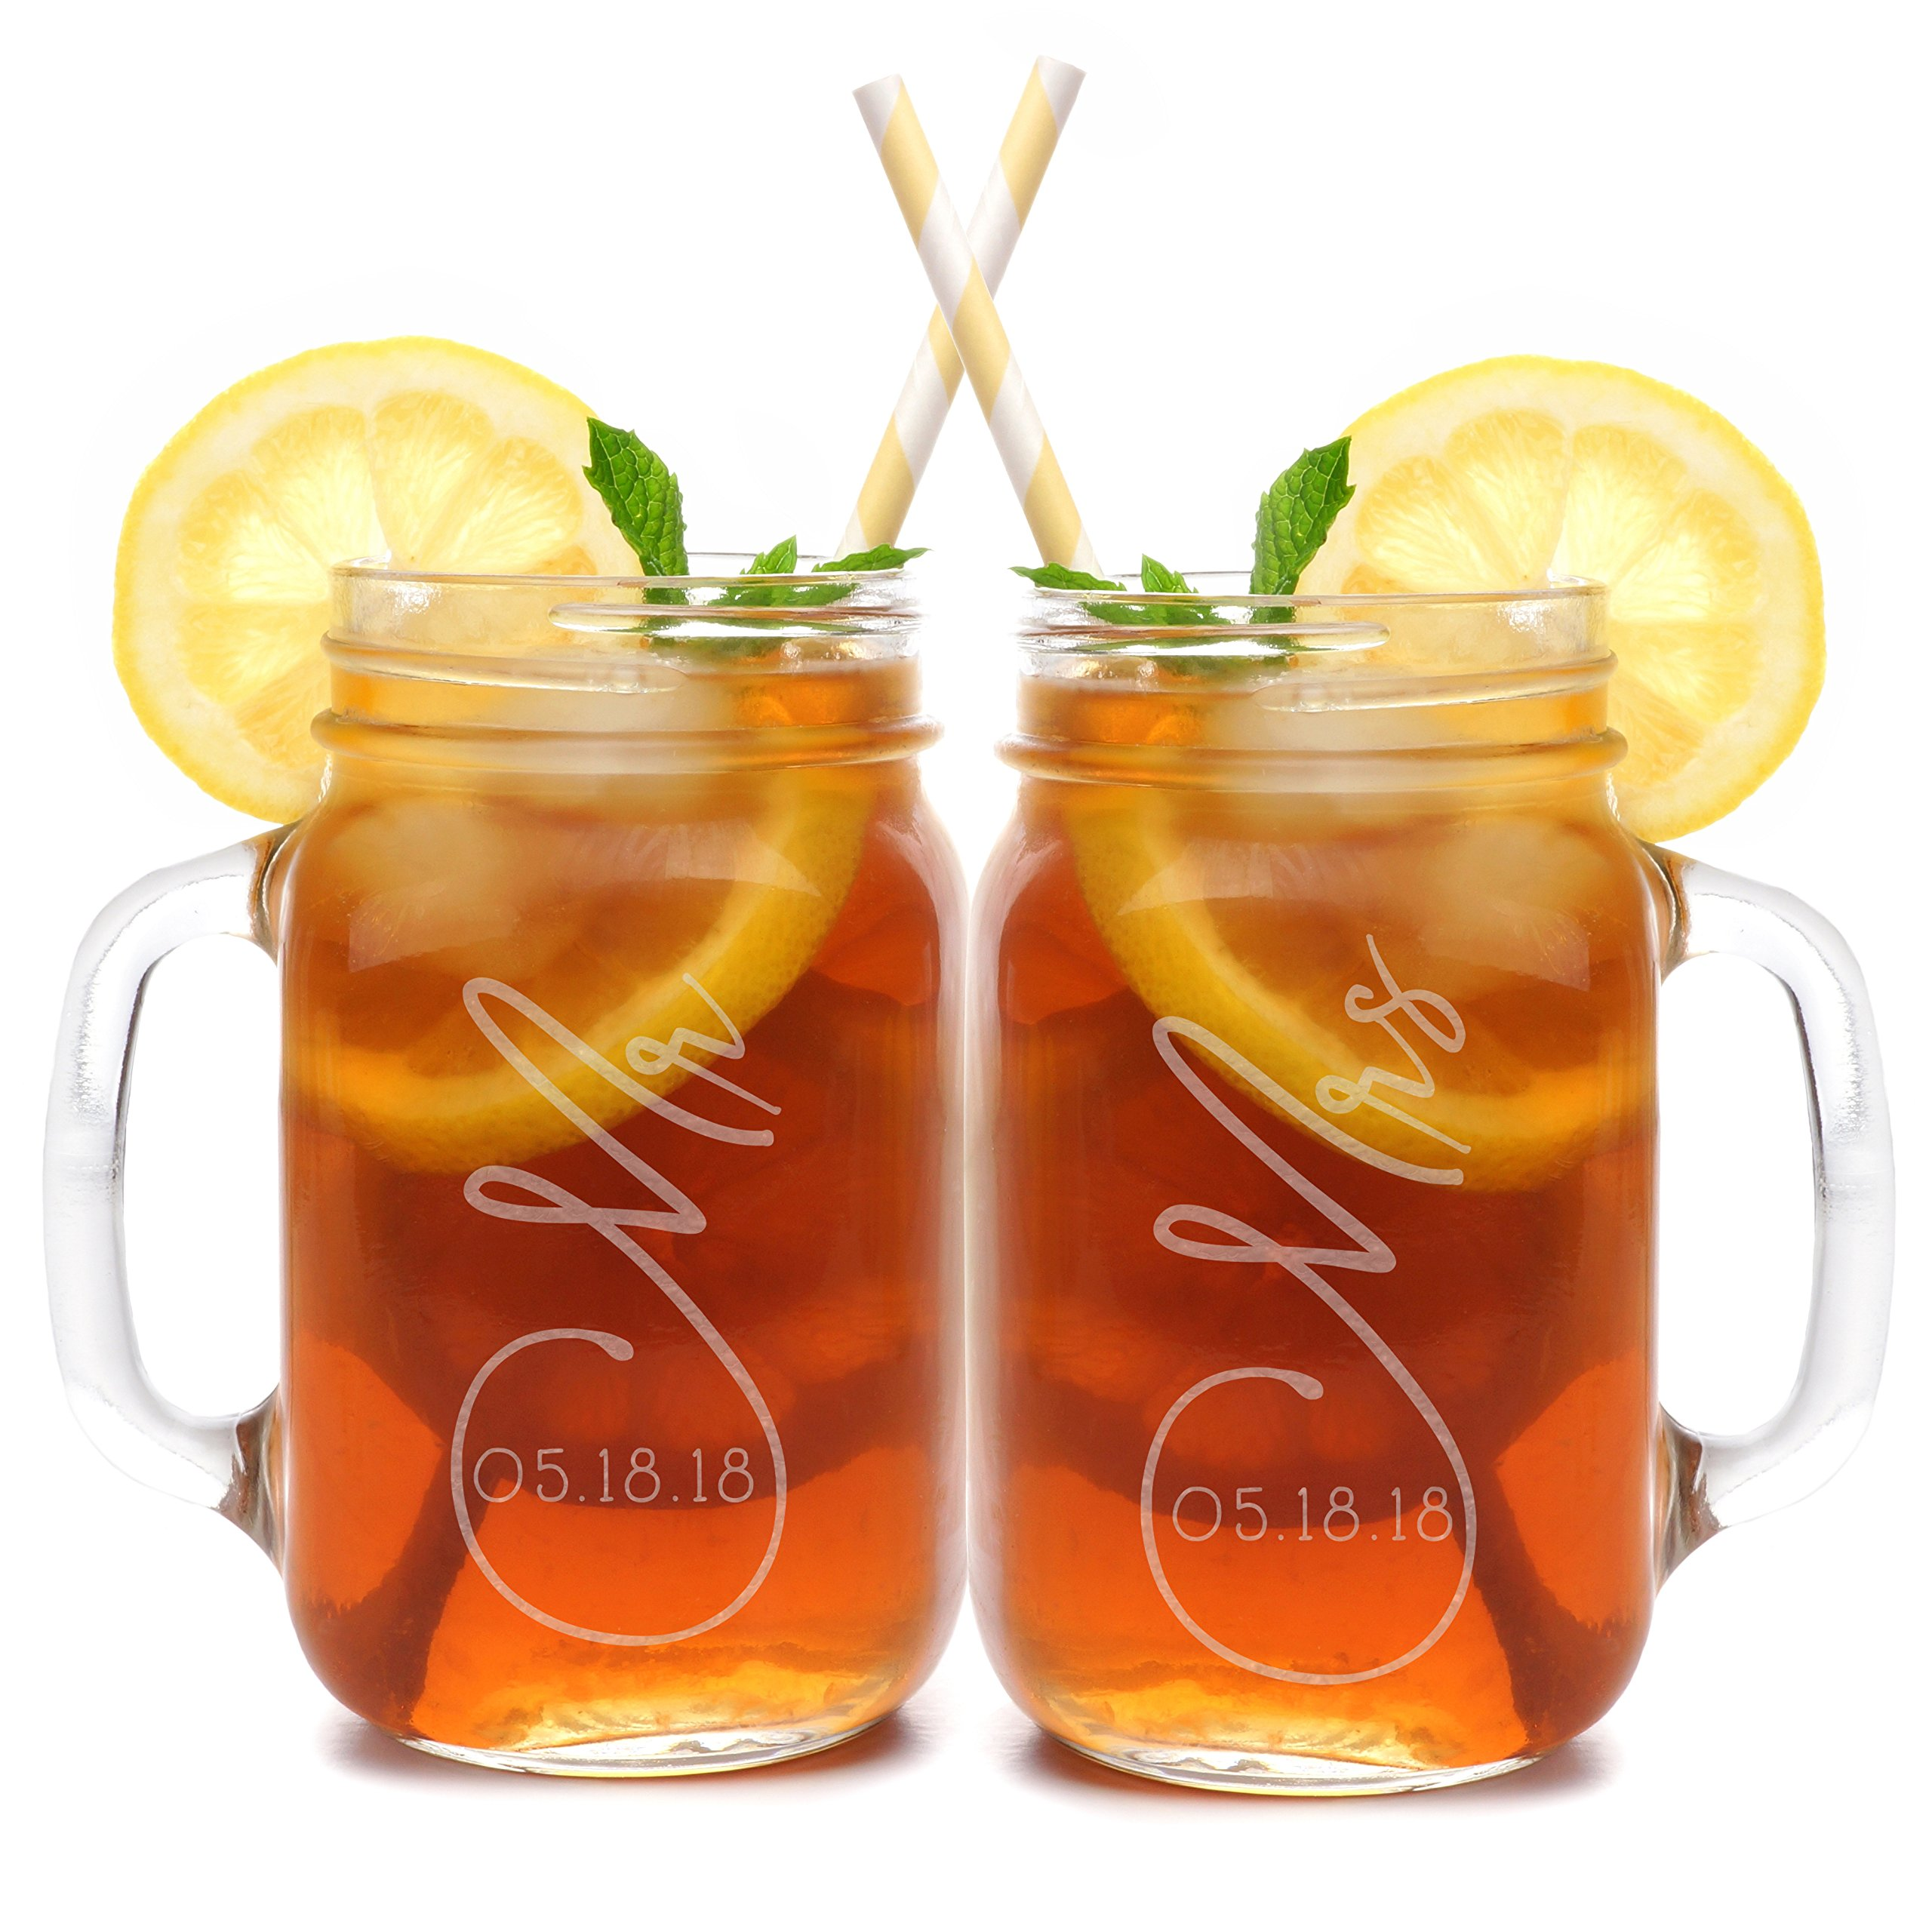 Set of 2, Personalized Mason Mug Set for Couples, Clear, Mr and Mrs Mason Jar Glasses - Custom Etched His and Her Gifts for Couples - Engraved for Free-10